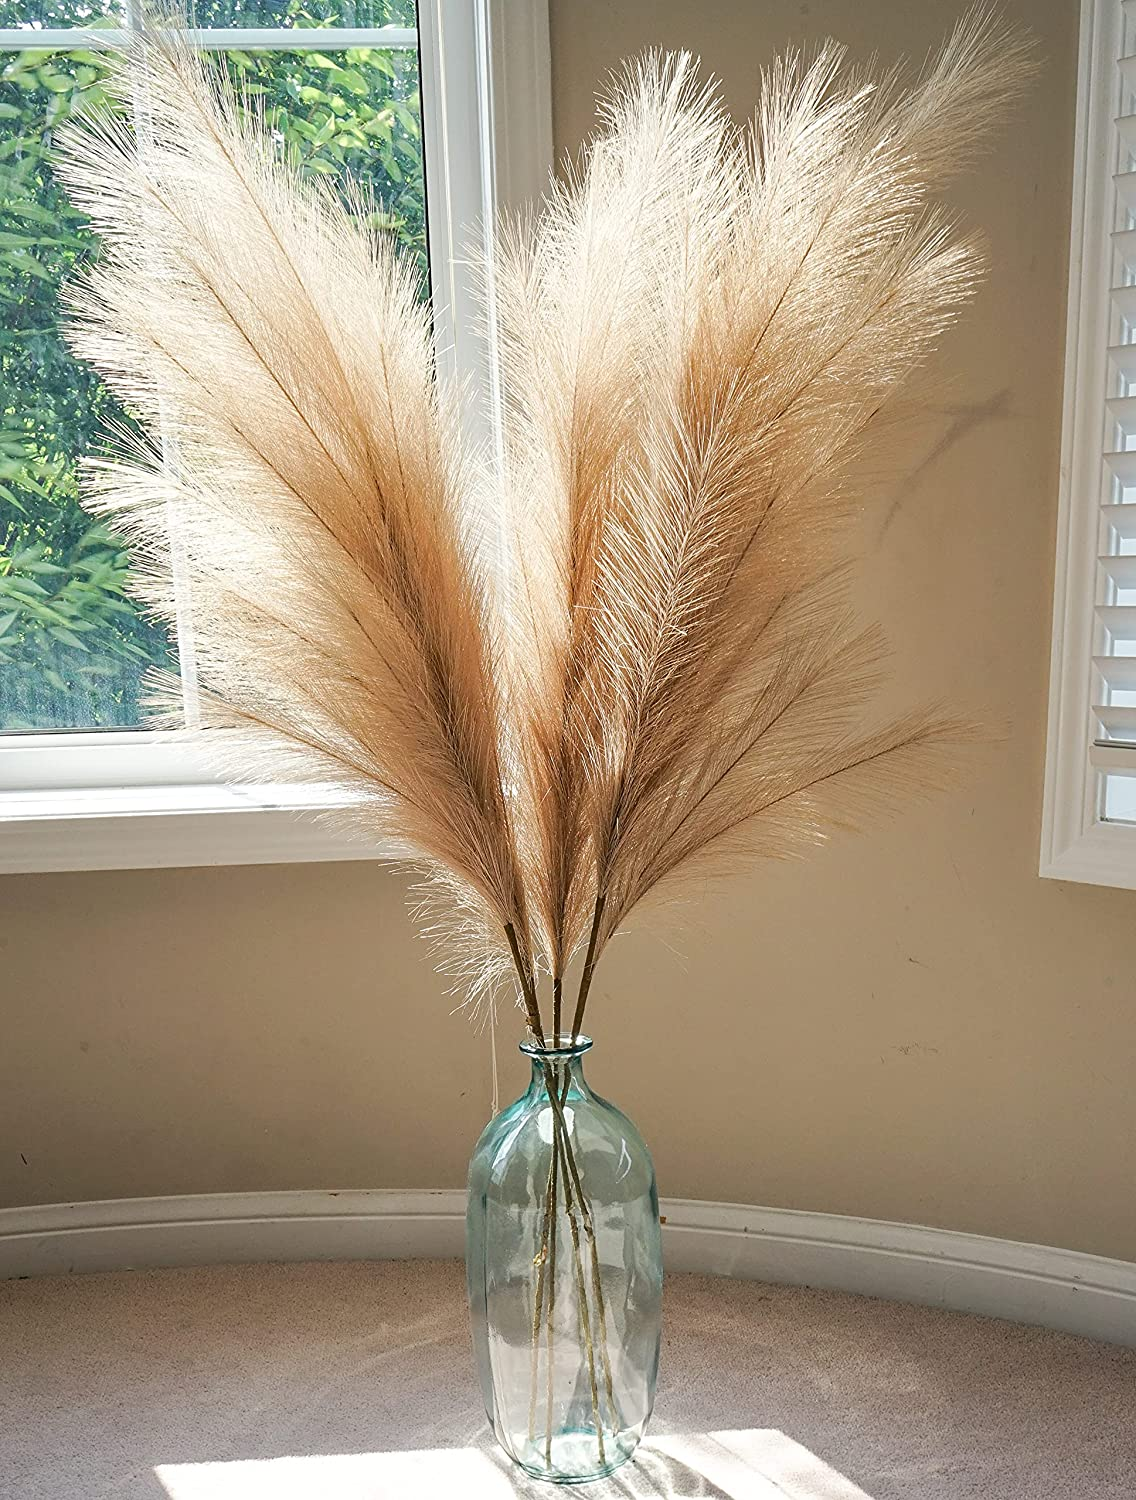 Boho Wish Faux Pampas Grass Set of 3Pcs - 44 Inches Tall Non-Shedding, Floor and Office Vase Filling-Fluffy Floral Branches for Wedding Decor- Home Kitchen and Bedroom Table Decoration